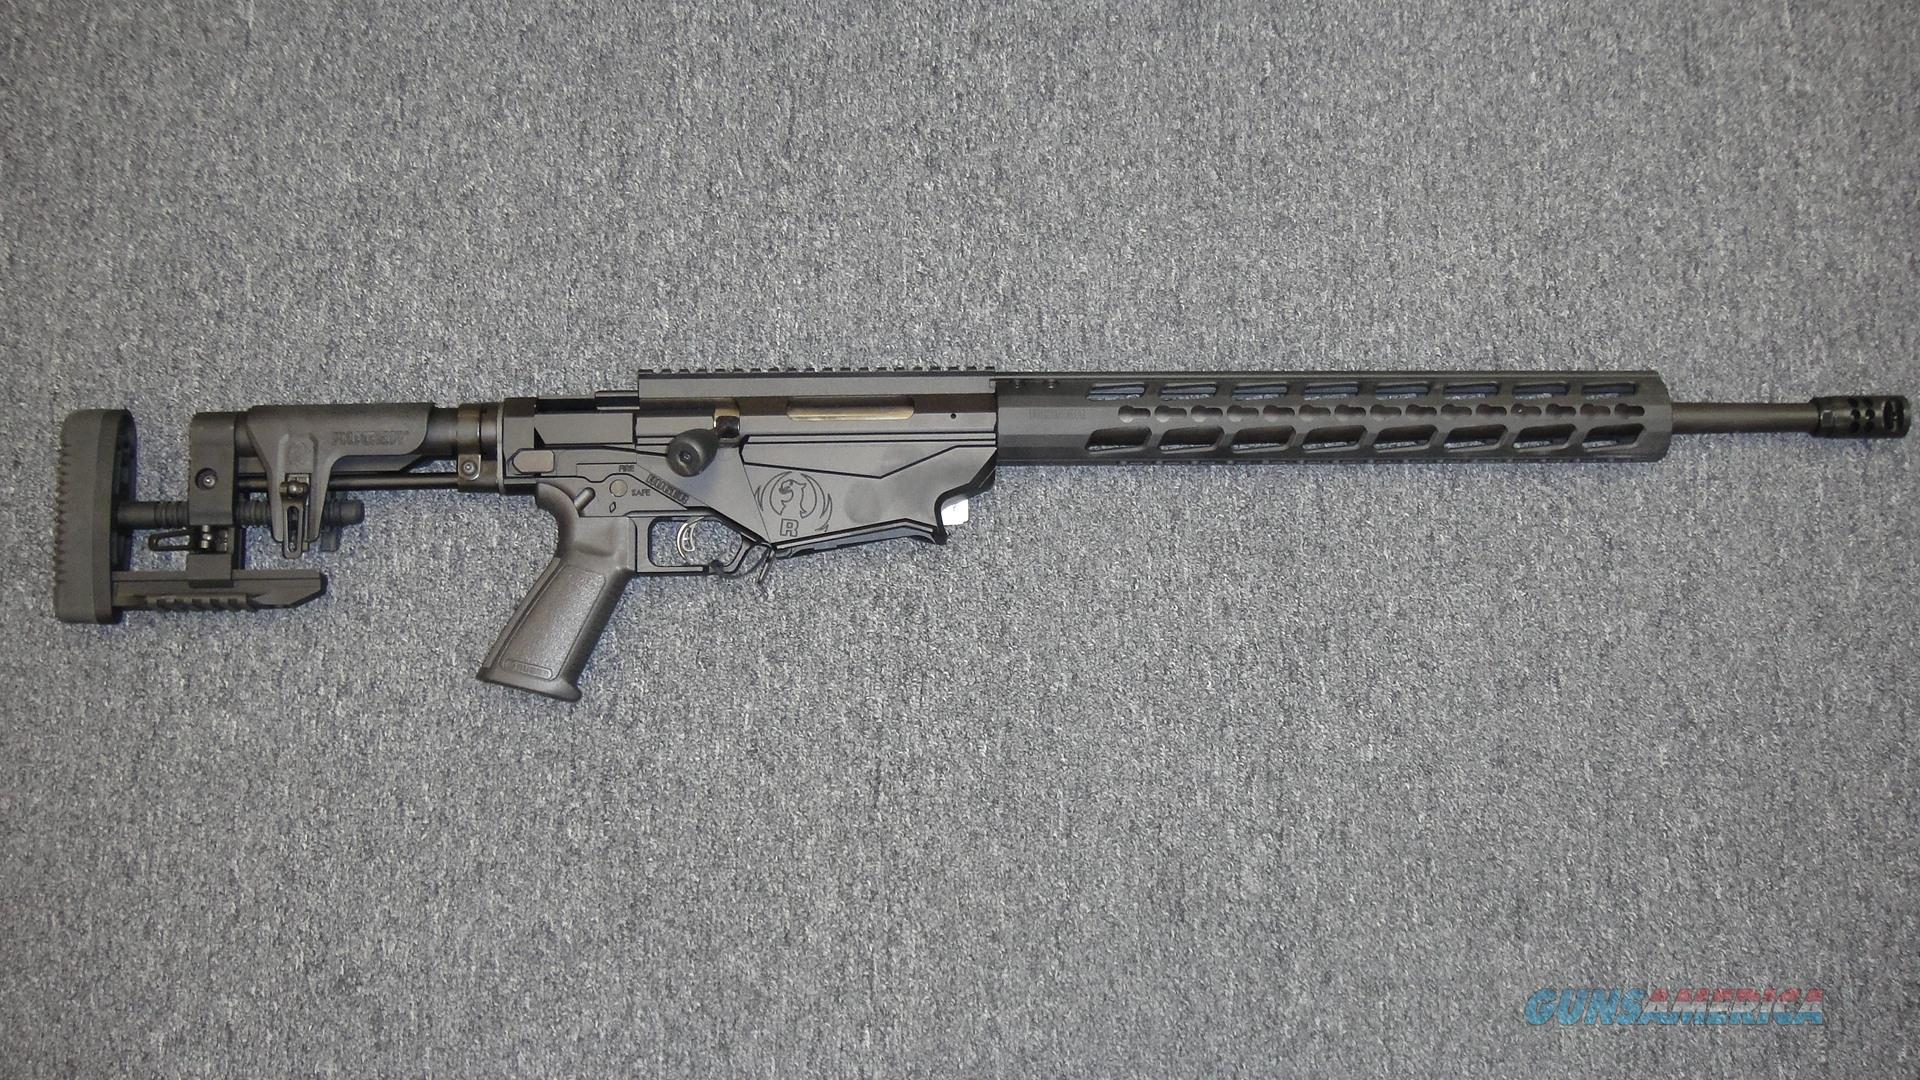 Ruger Precision 5.56 NATO  Guns > Rifles > Ruger Rifles > Precision Rifle Series